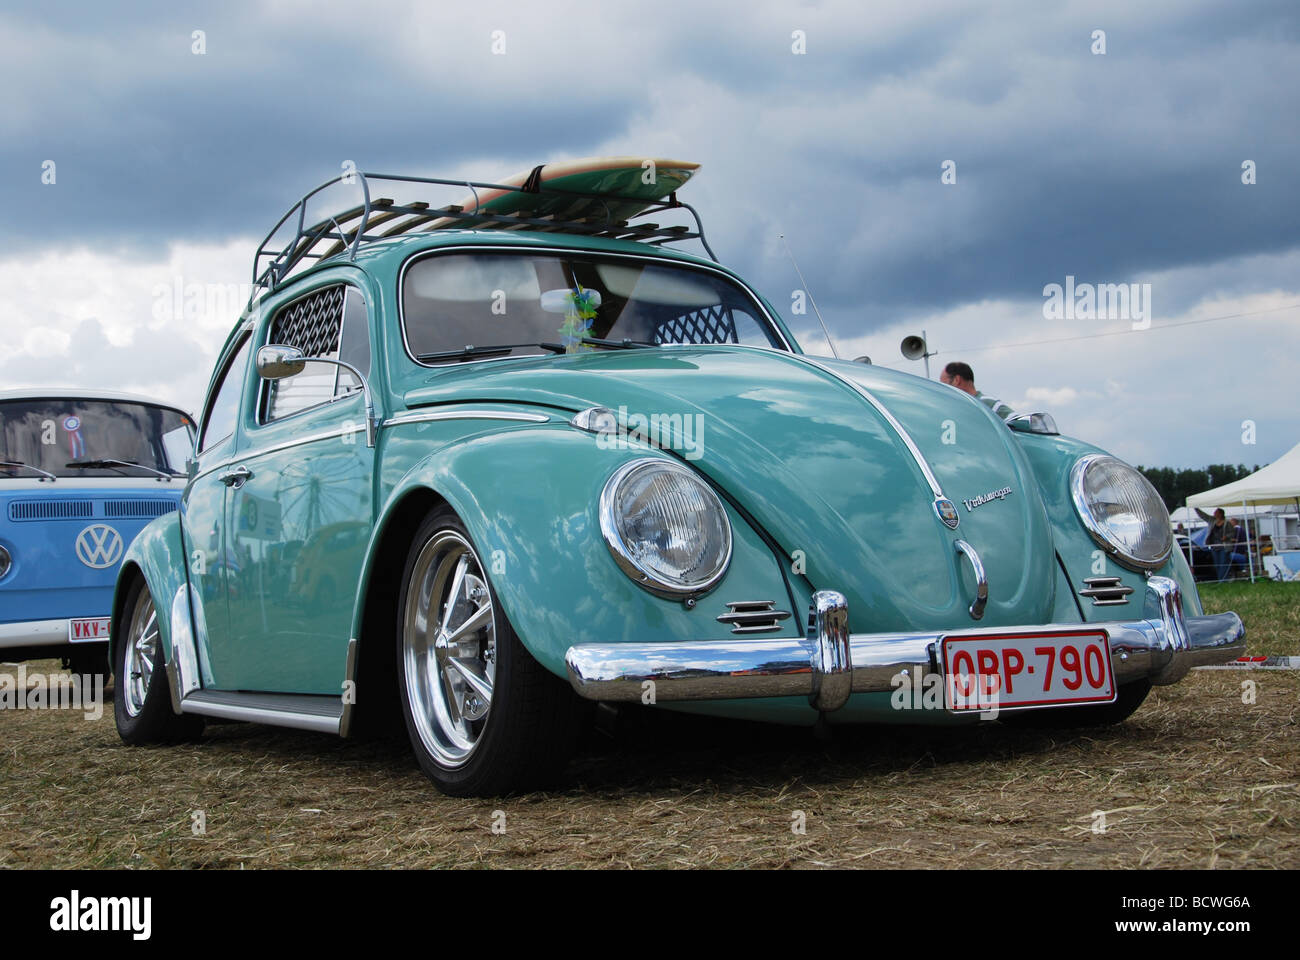 Classic Mint Green Vw Beetle Low Rider Stock Photo